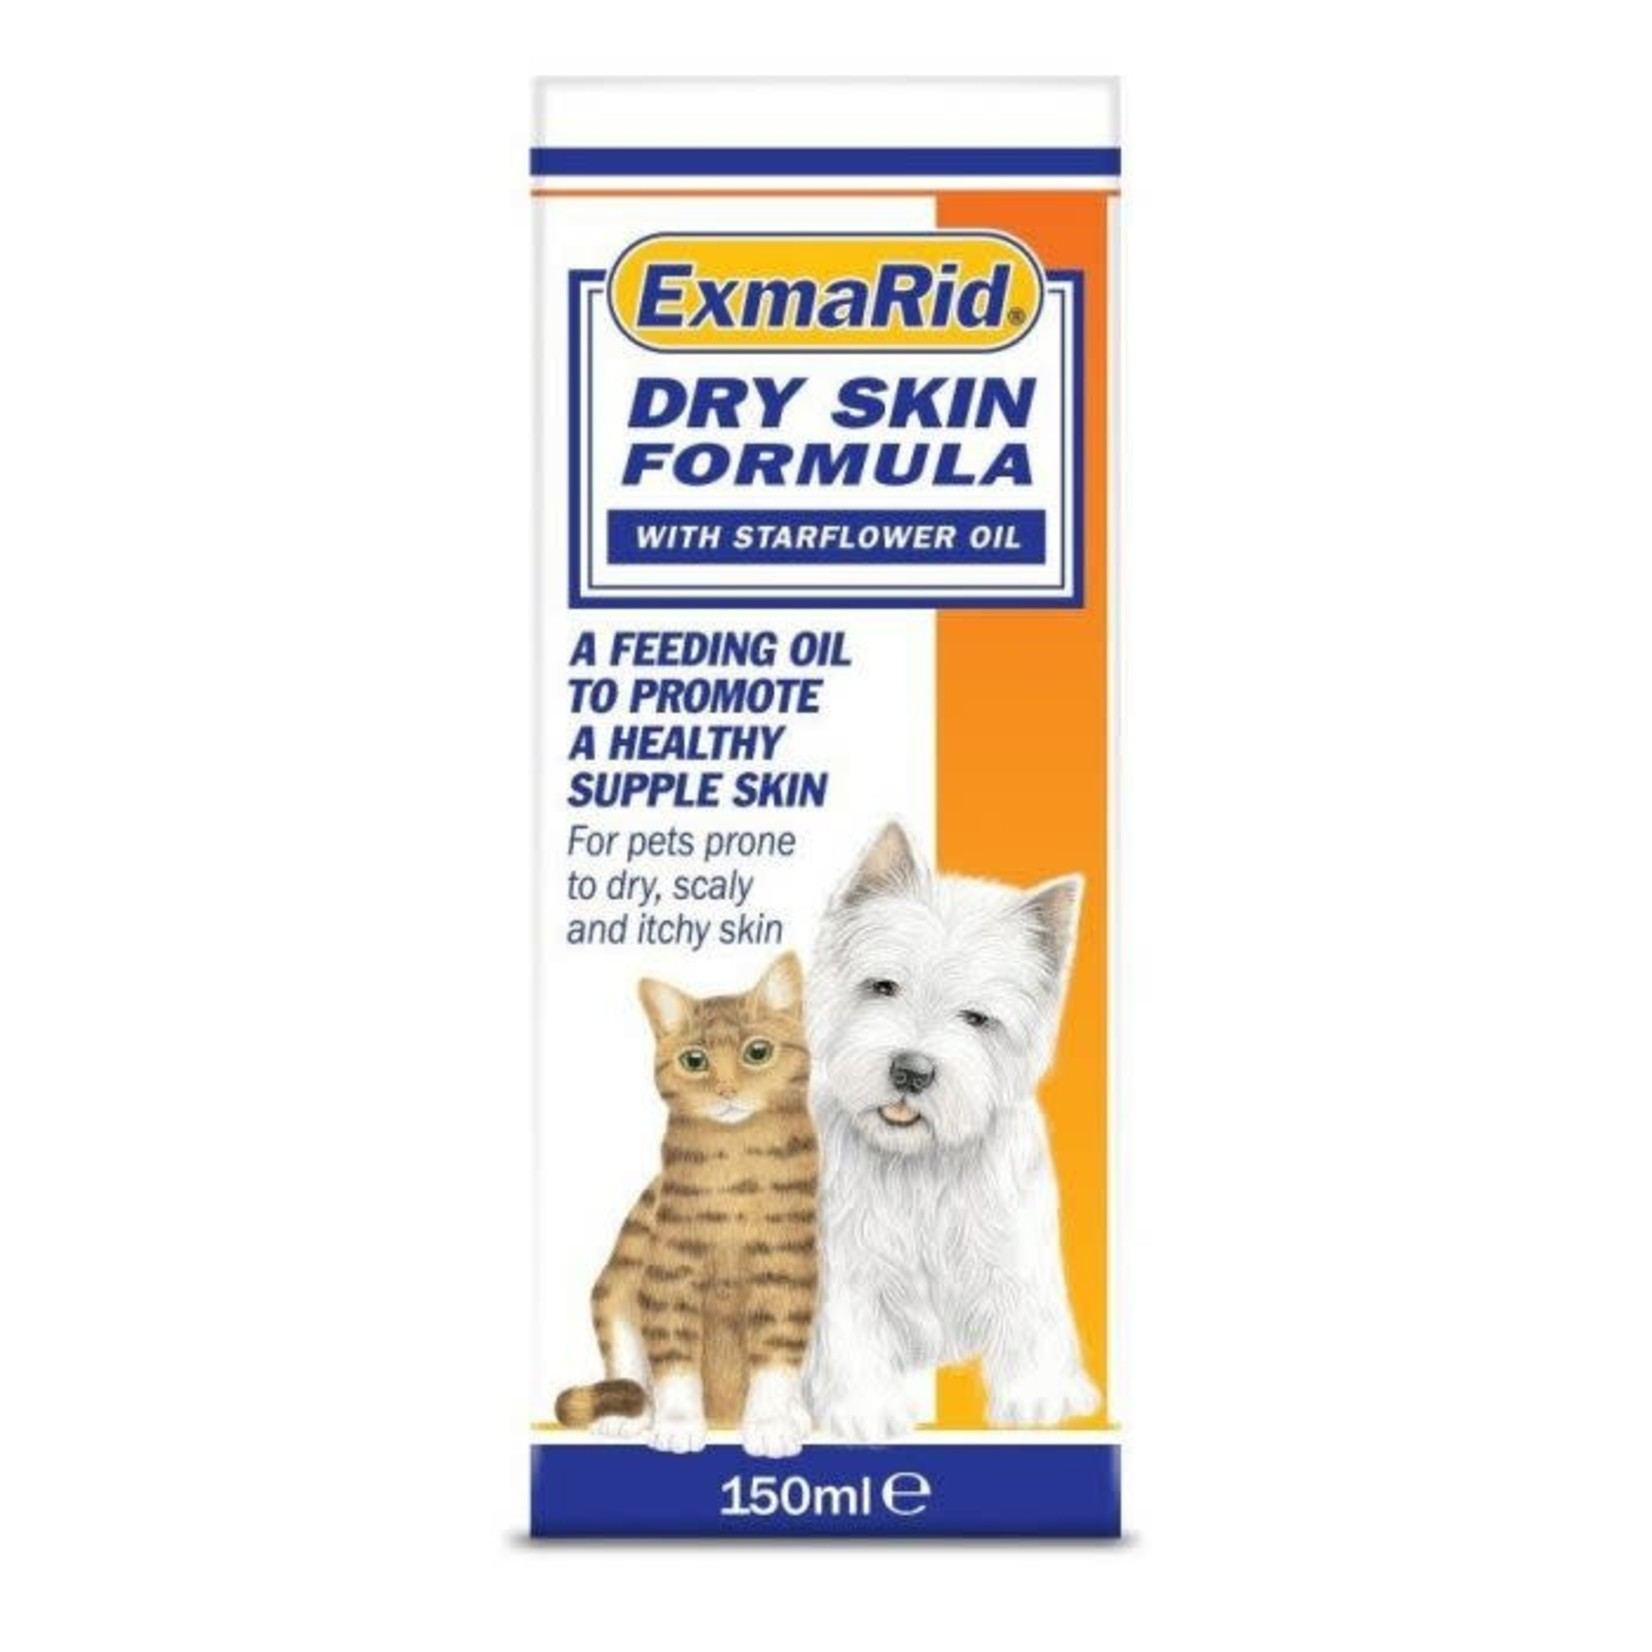 Exmarid Dry Skin Supplement for Cats & Dogs 150ml